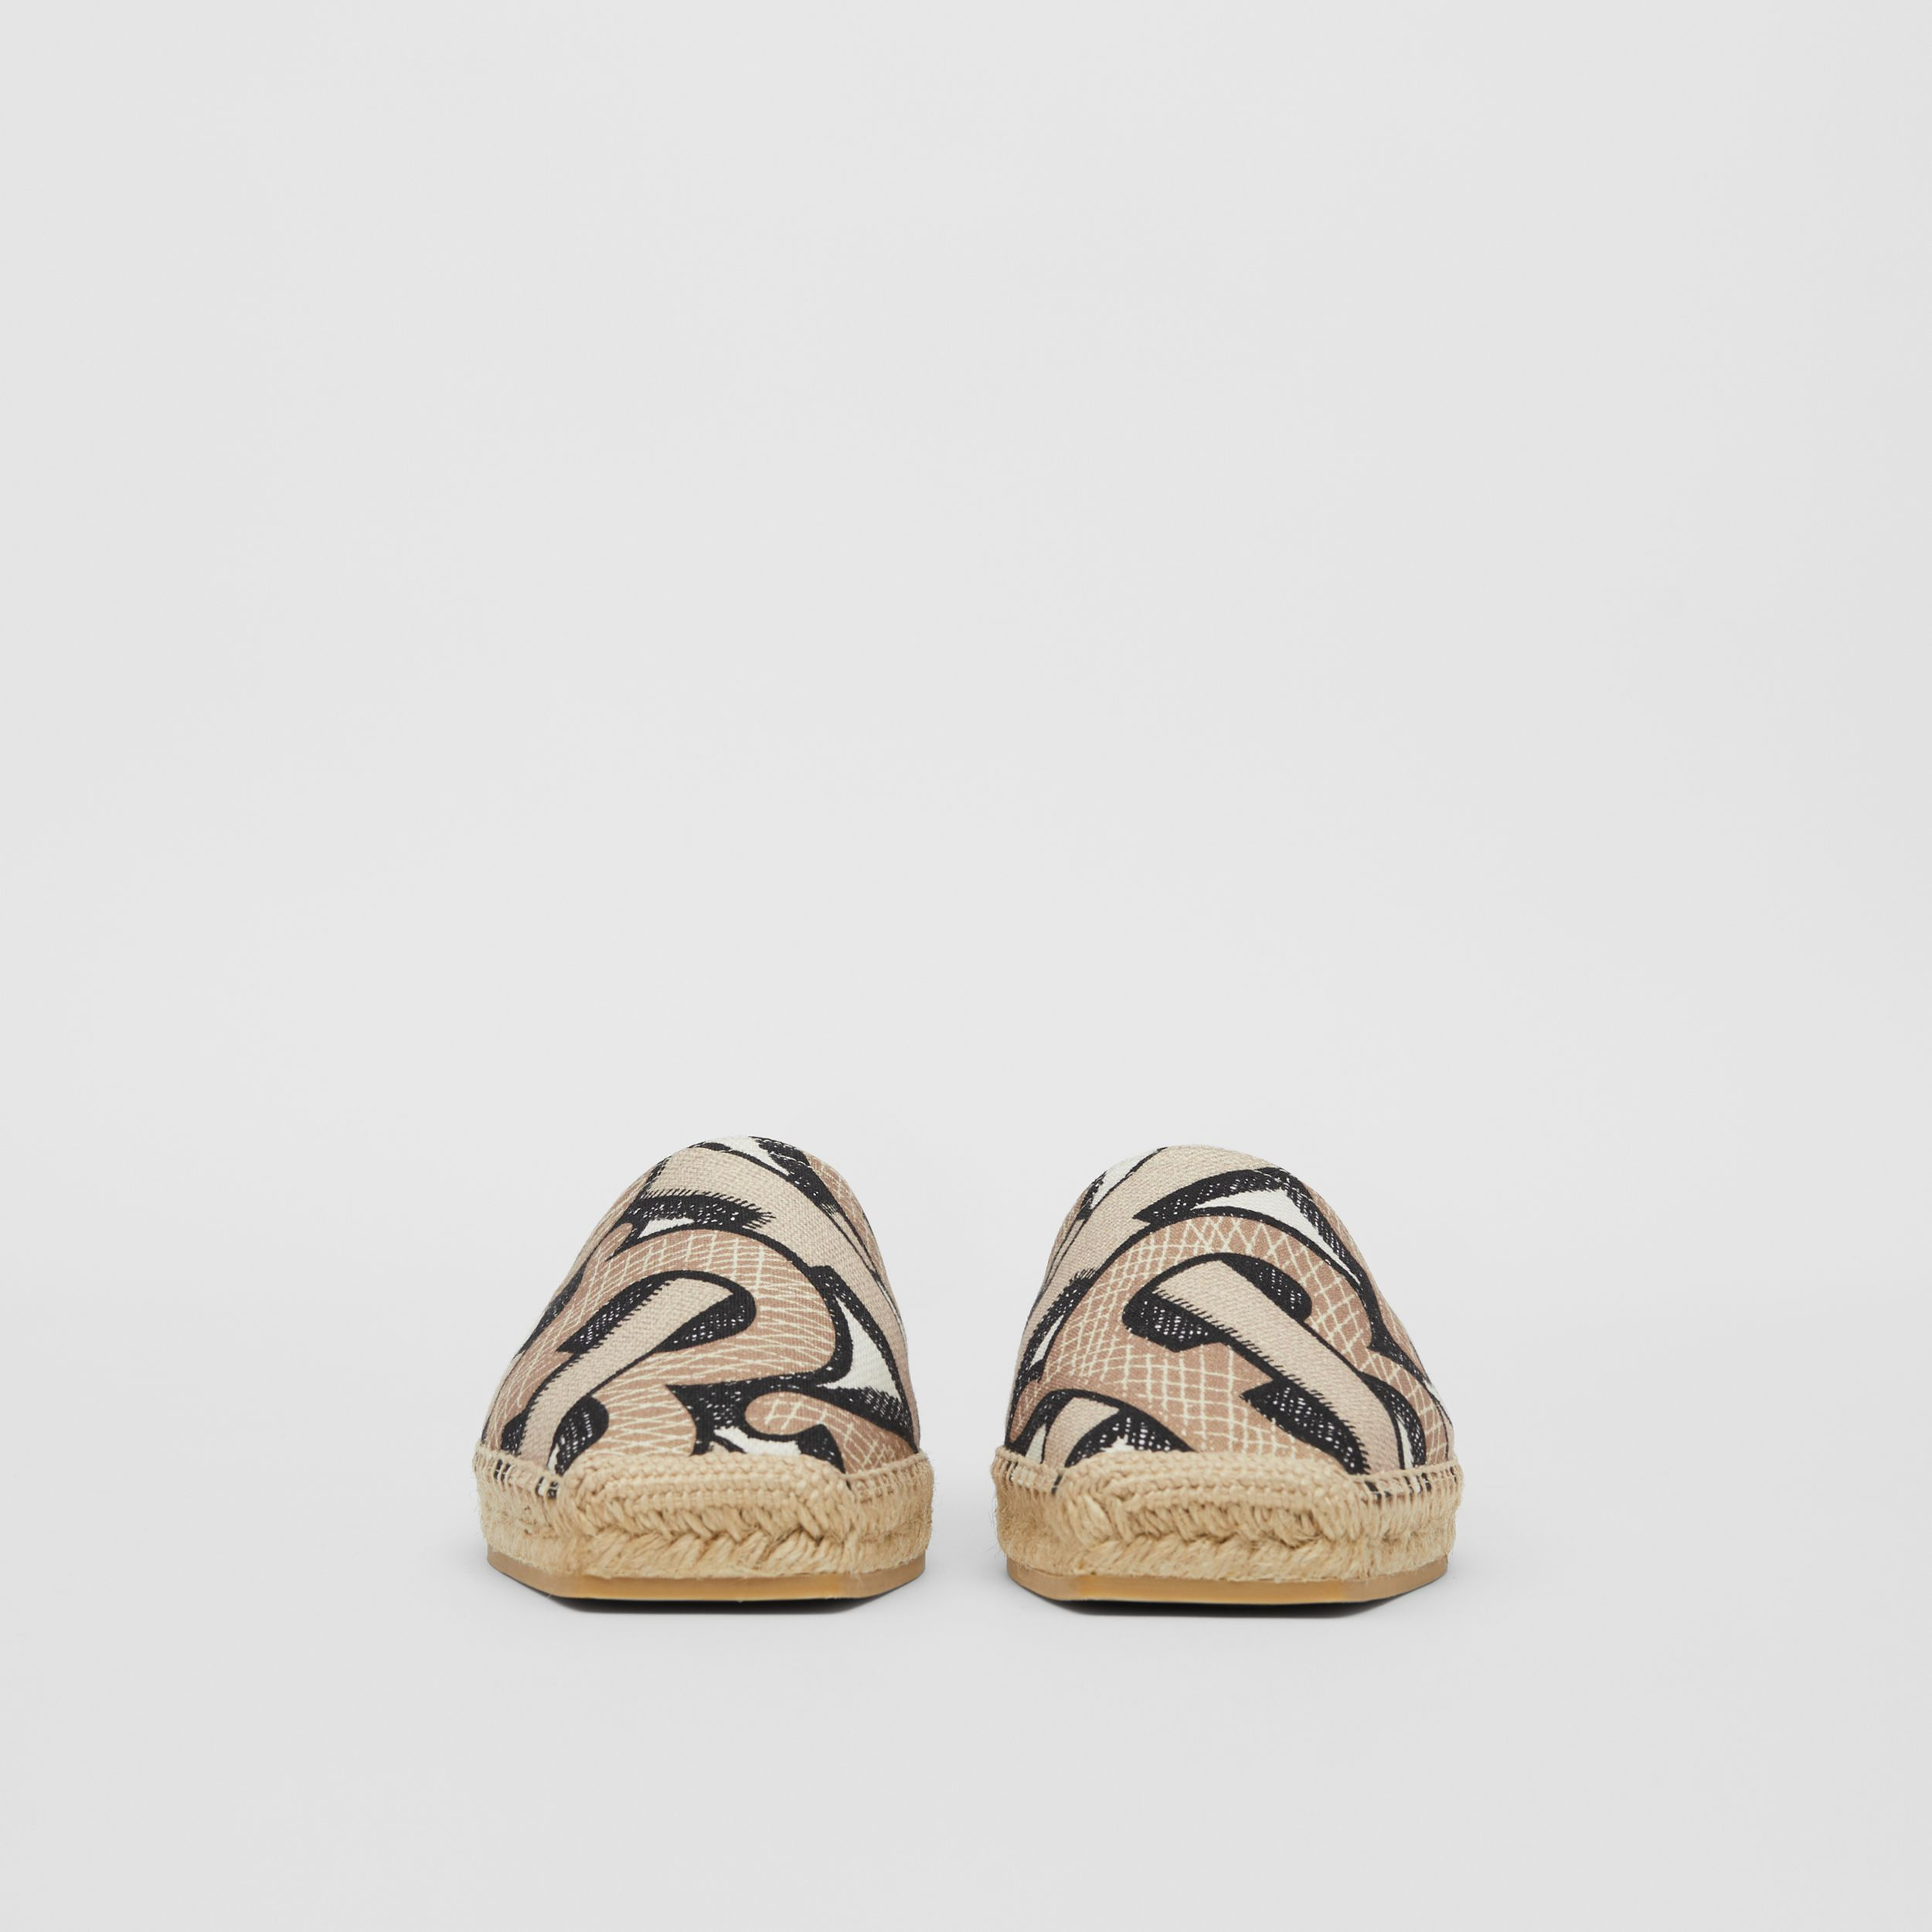 Monogram Print Cotton Canvas Espadrilles in Dark Beige - Women | Burberry Canada - 4